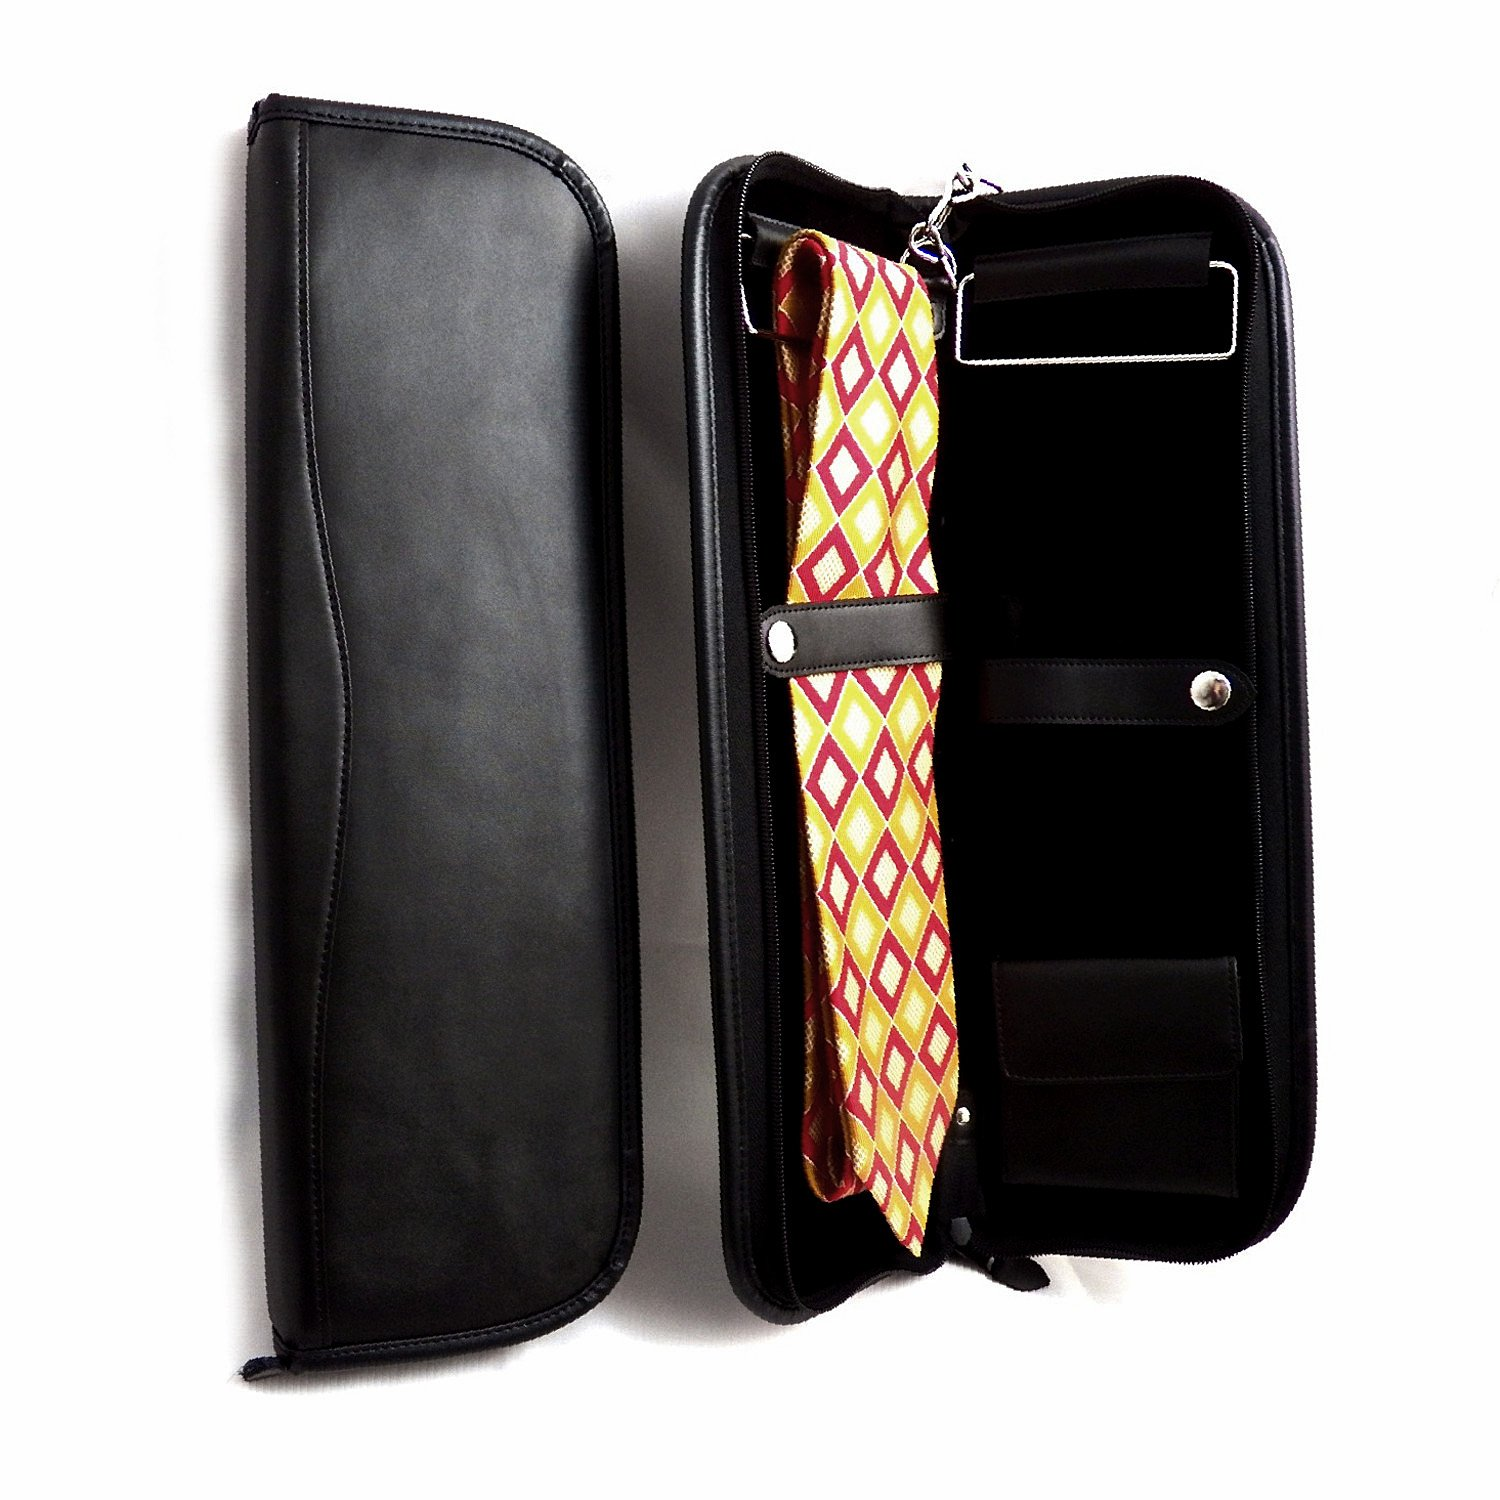 Mens Gifts - Black Leather Travel Tie Case